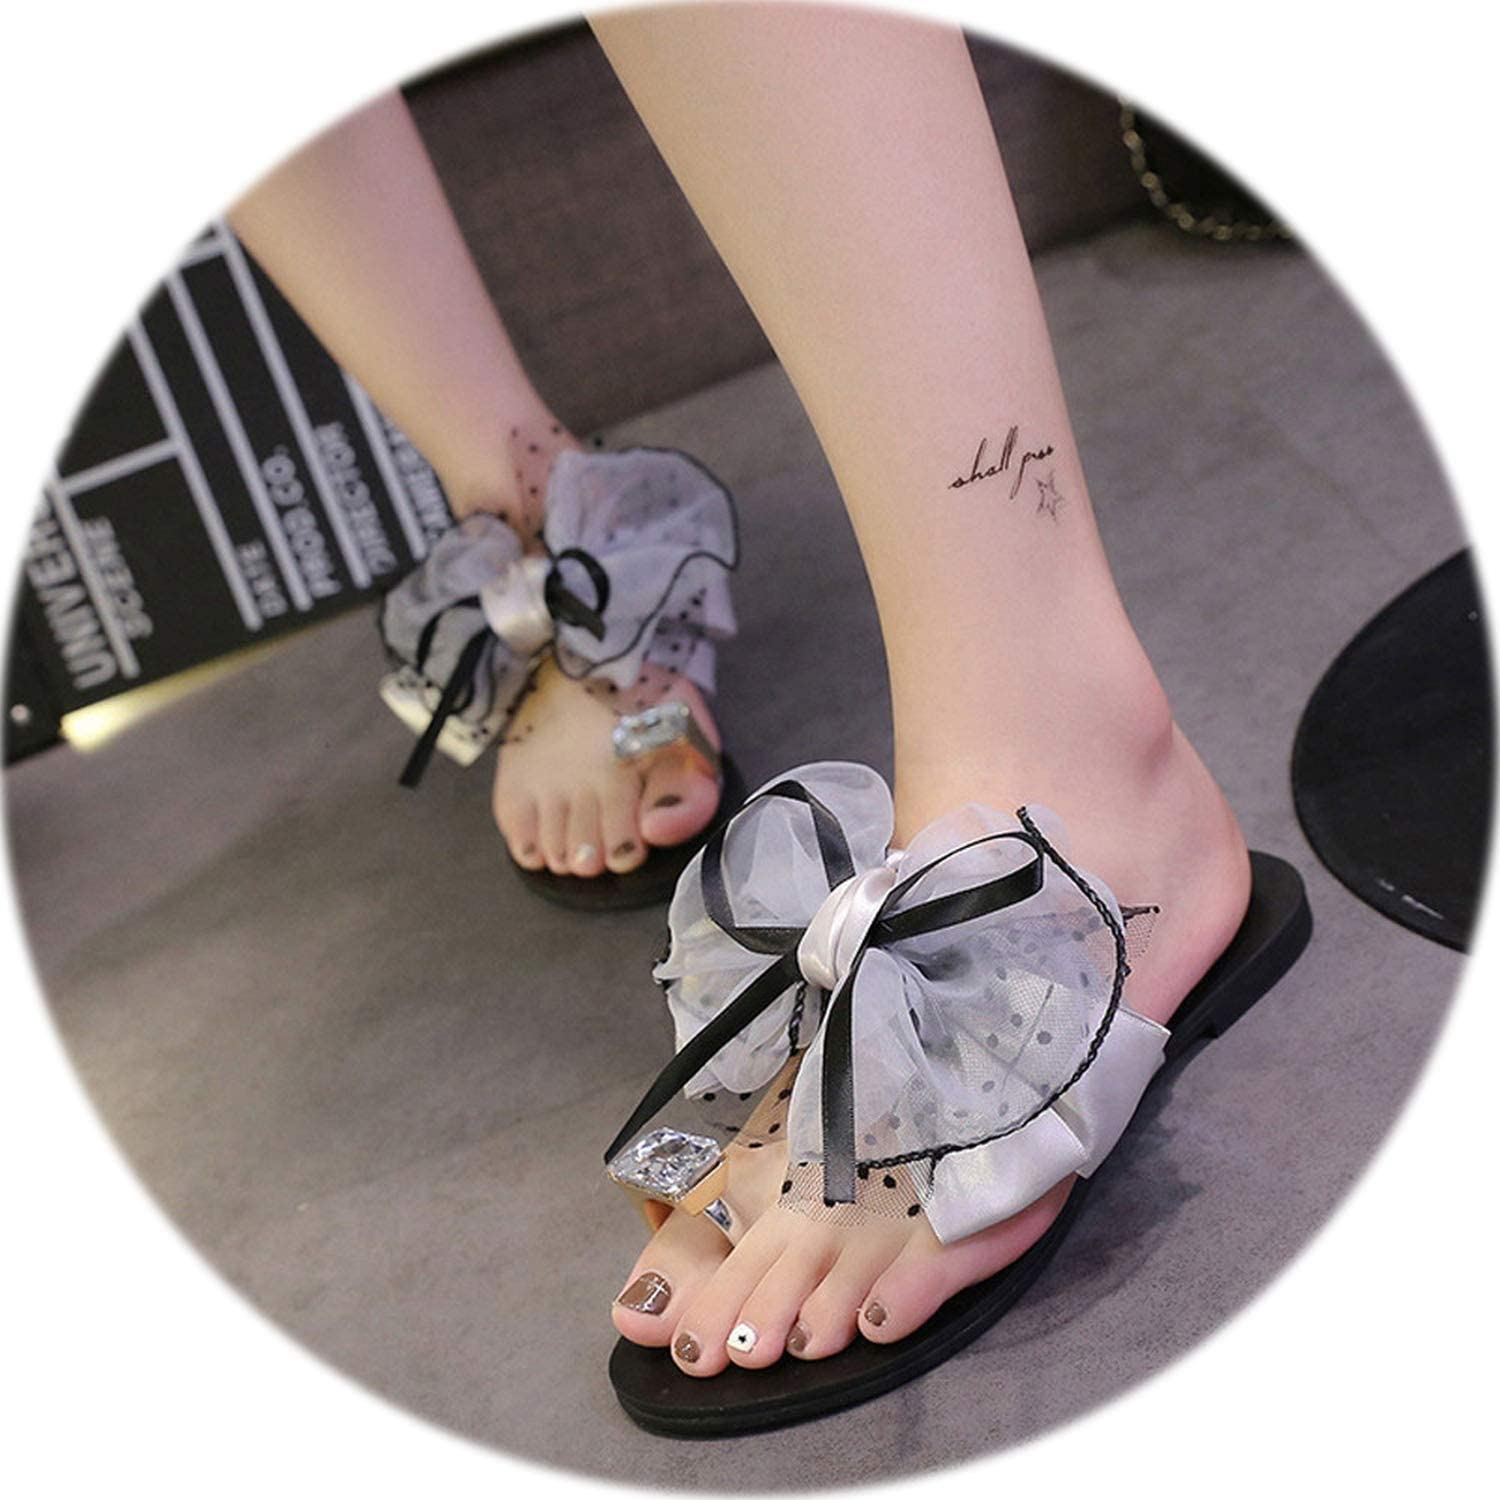 Rather be Women Flip Flops shoes Flower Bow Flat Heel Toe Sandals Slipper Beach shoes Casual shoes 2019 Outside Slippers